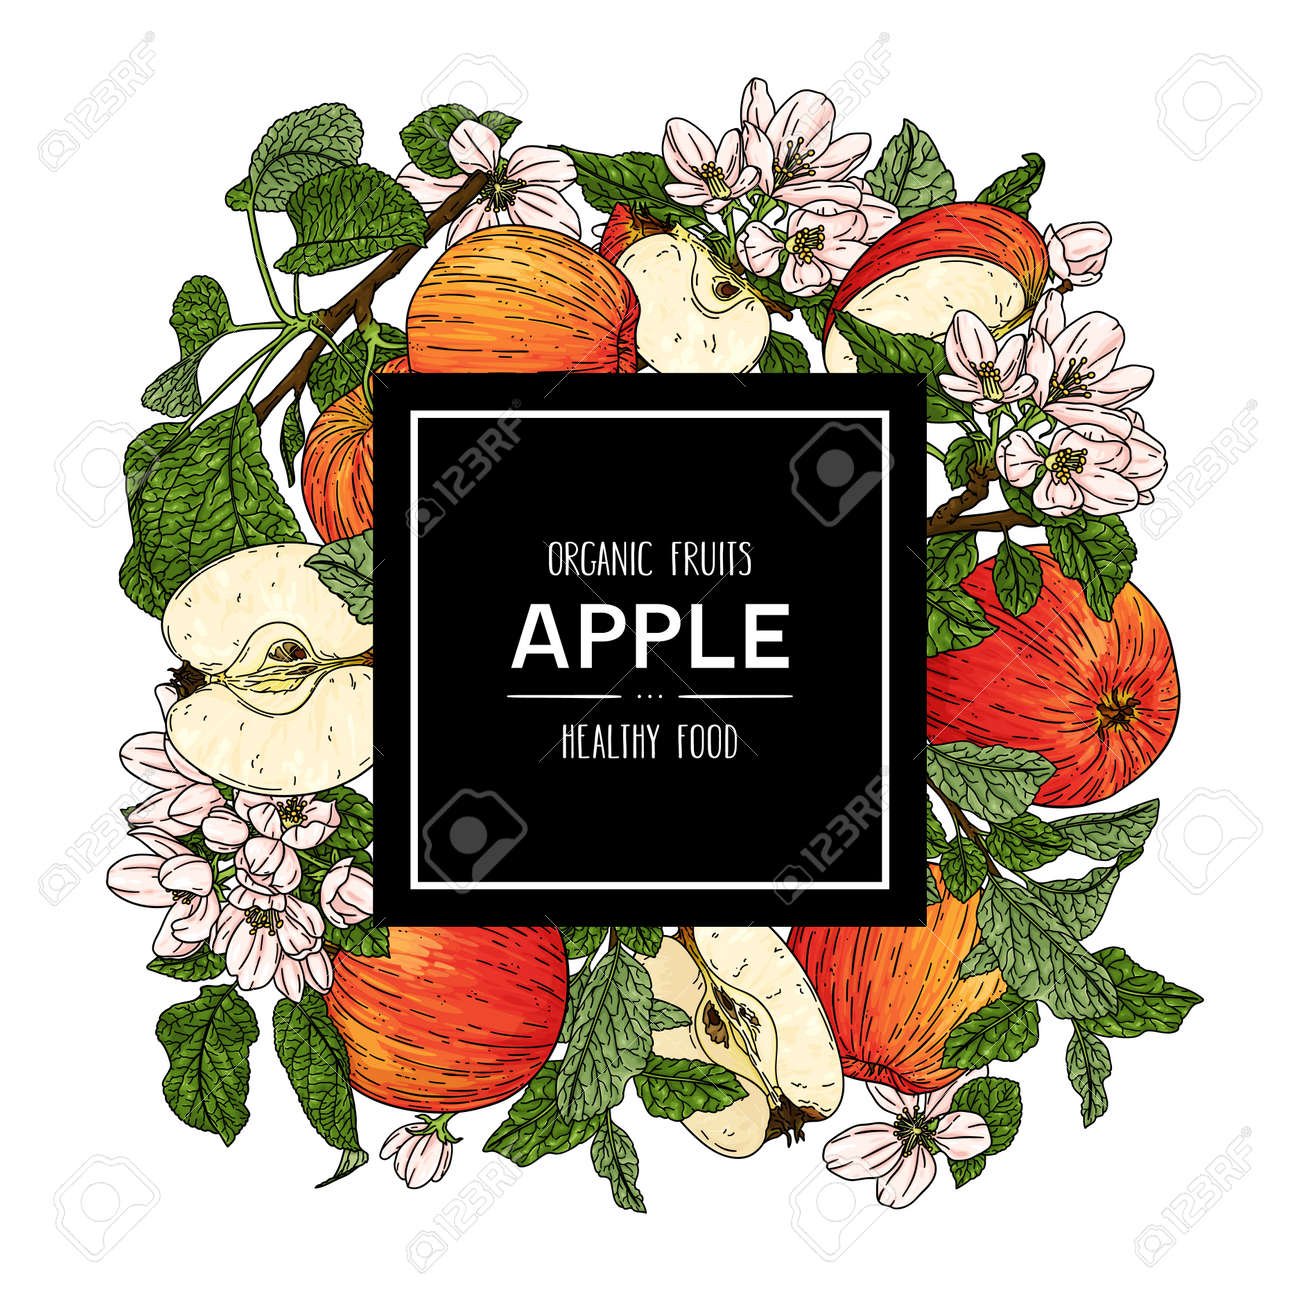 Vector hand drawn background with organic whole apple, half, flower, branch and leaves. Organic fruits healthy illustration - 168597277